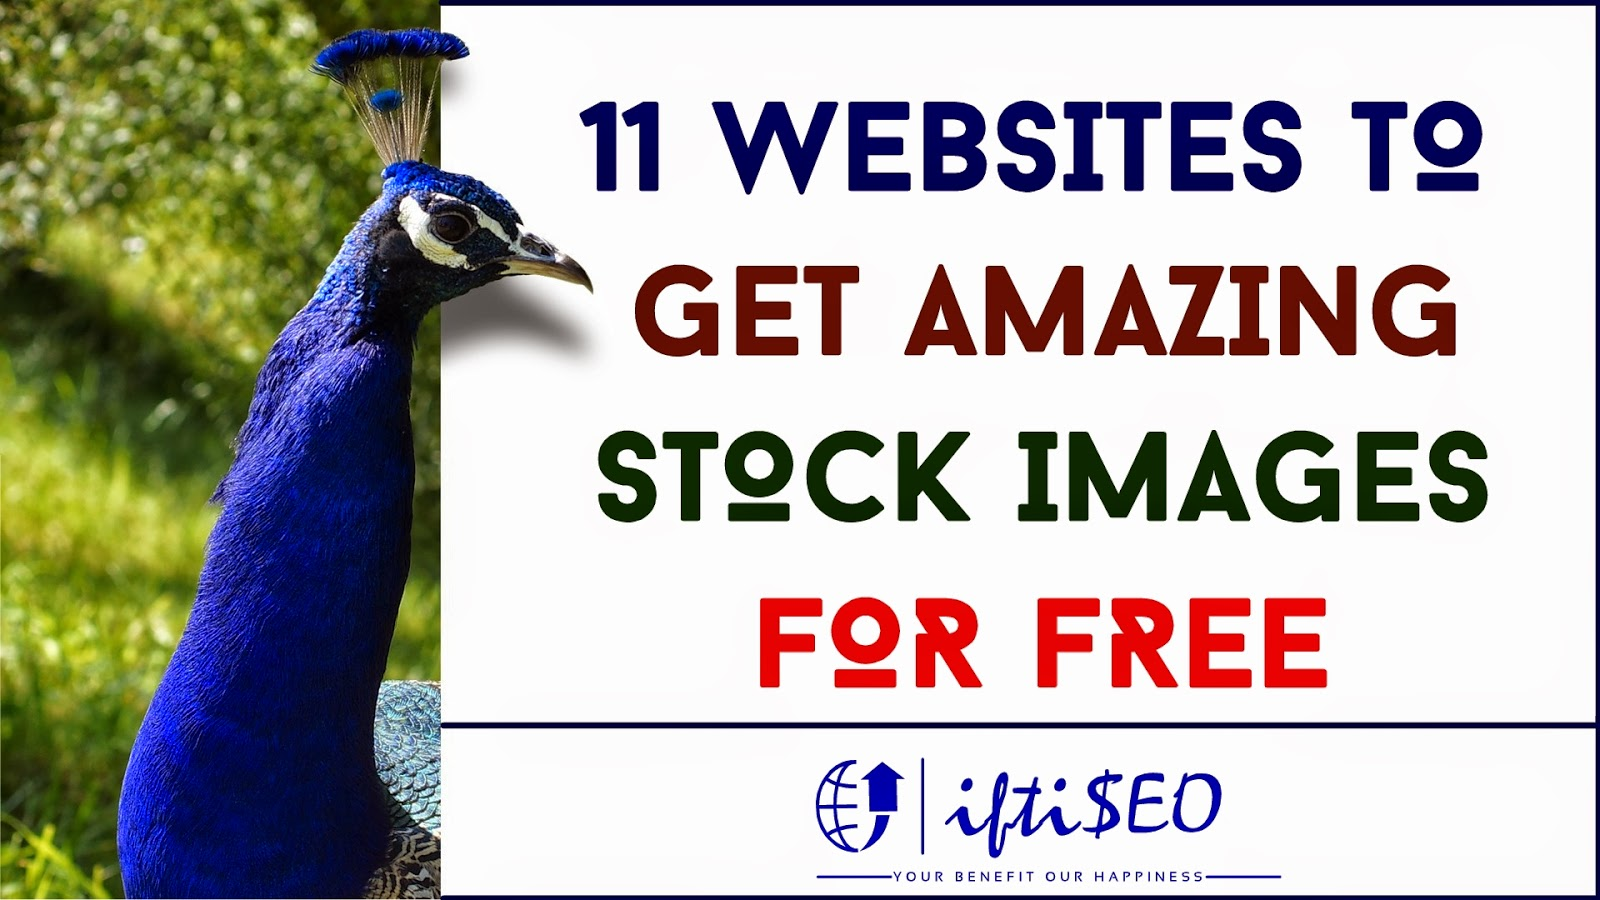 http://www.iftiseo.com/2015/05/11-free-stock-images-websites.html